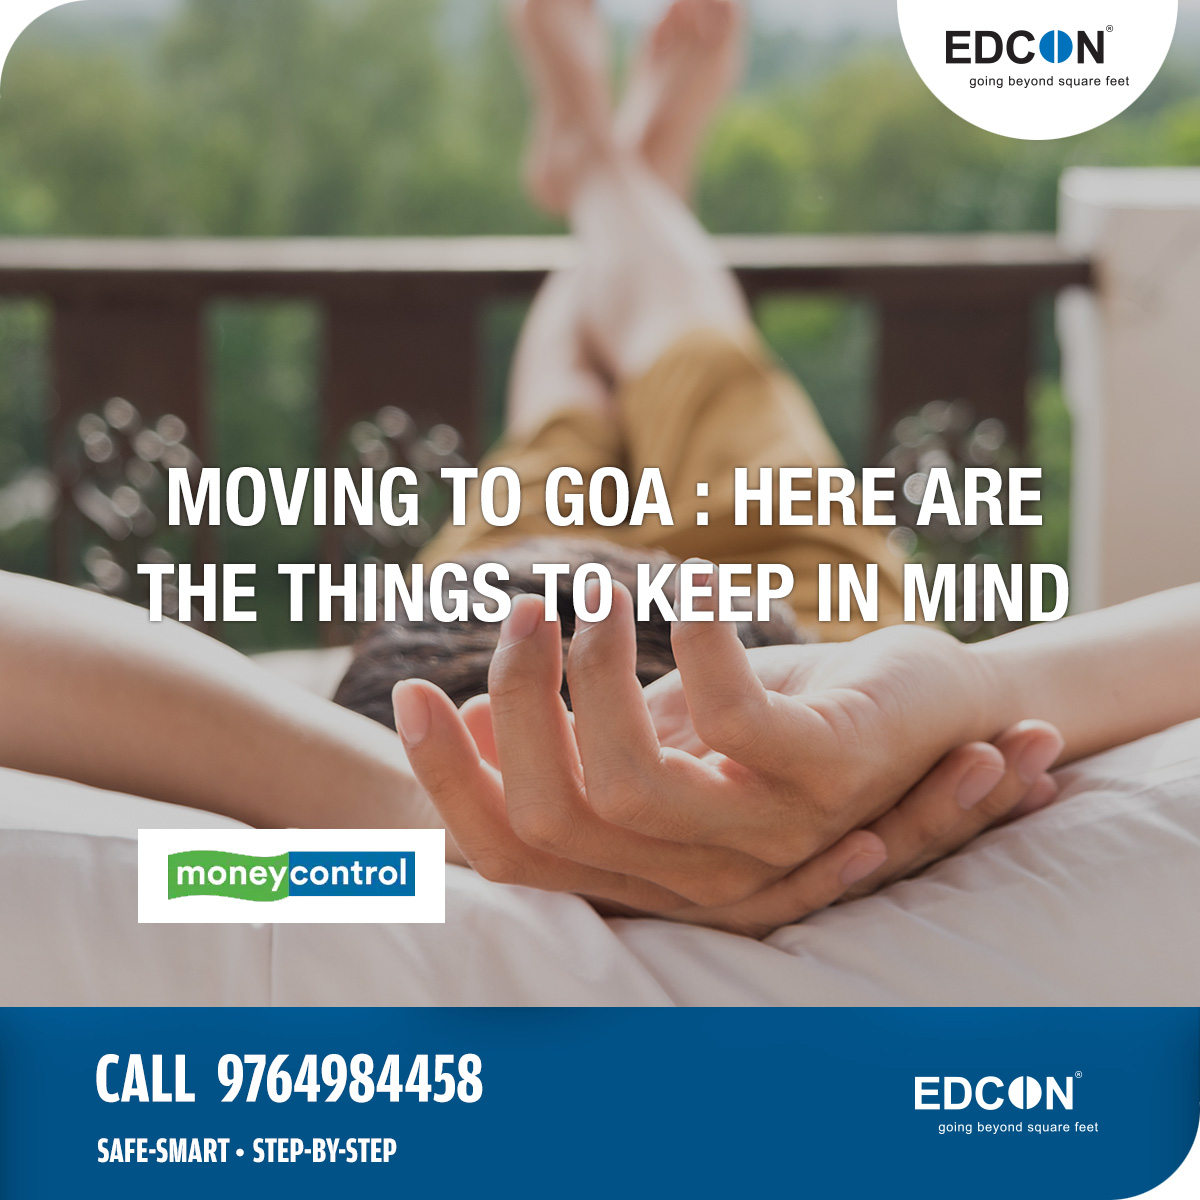 Planning to move to Goa? Count your banknotes and decide a budget. List your priorities. These and more tips.